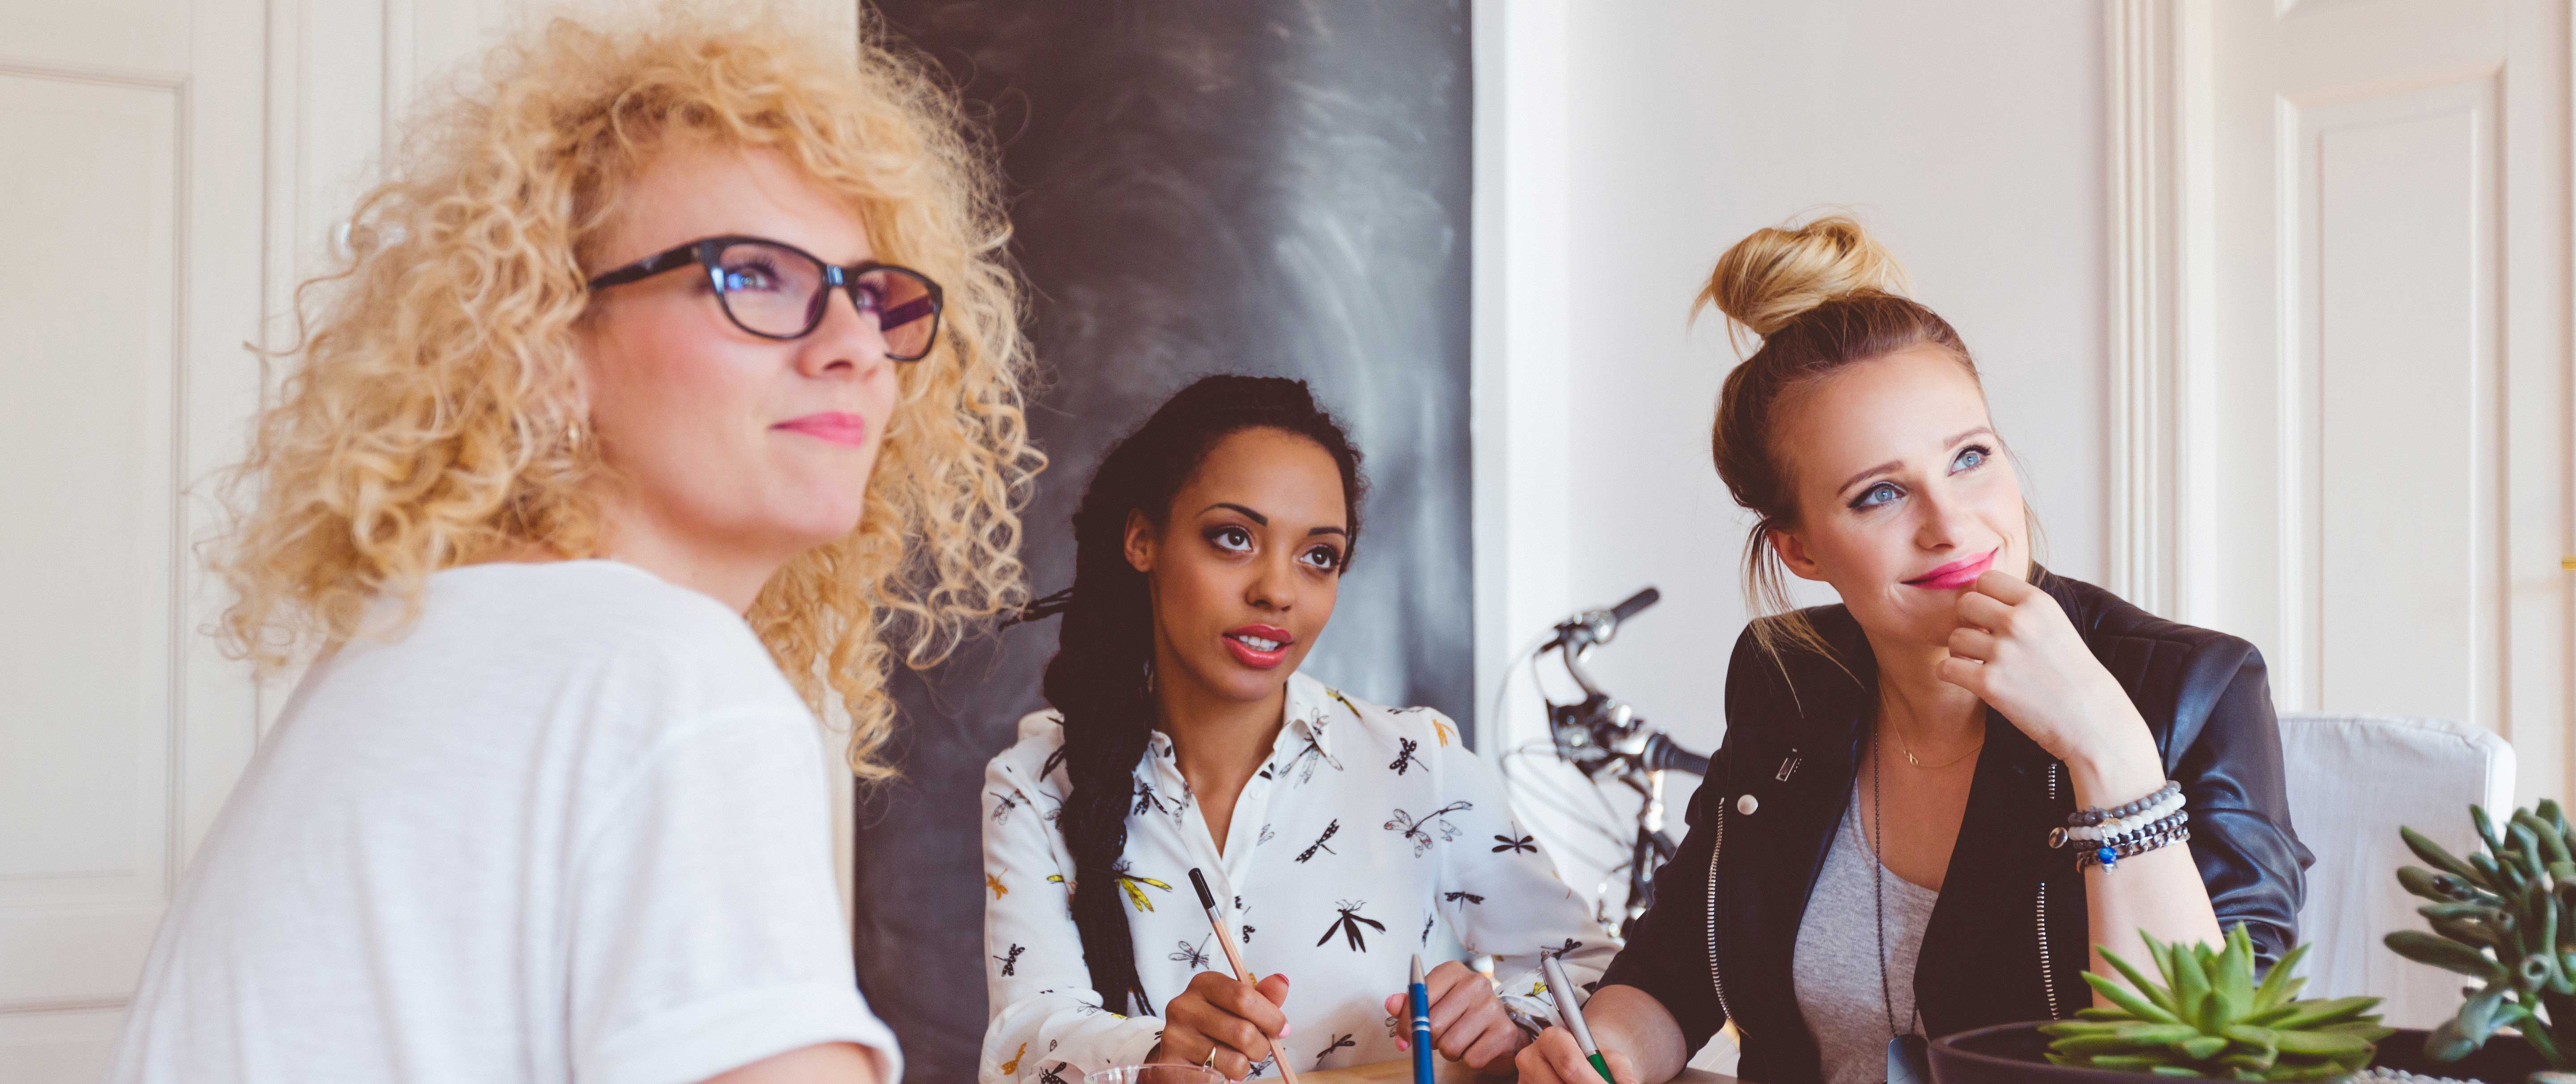 Join us istock photo of 3 women staring, at what... I do not know?